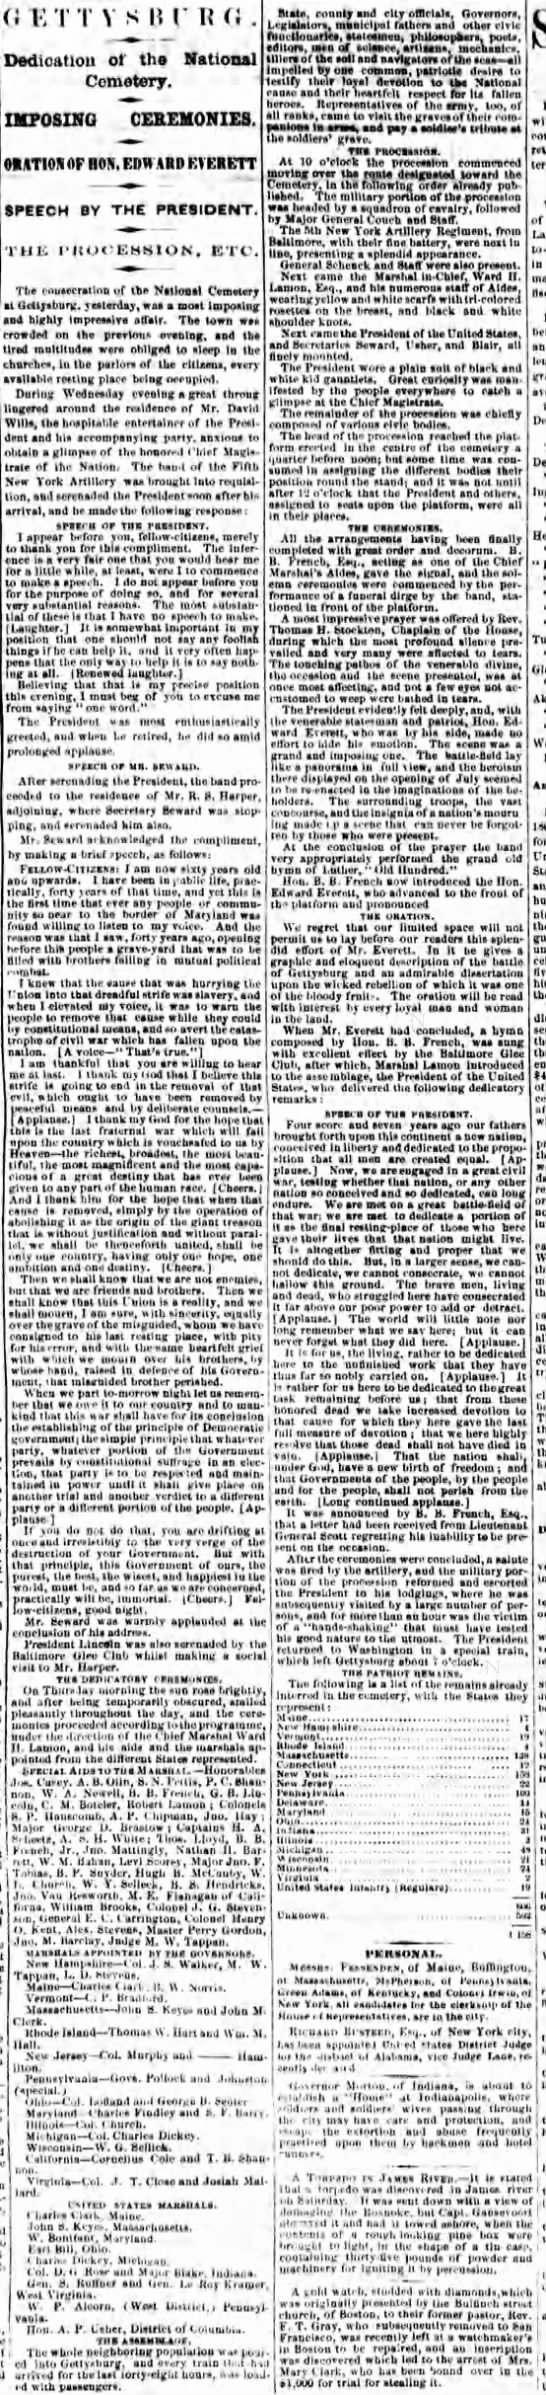 National Republian, Washington, DC Friday, Nov 20, 1863, p.2